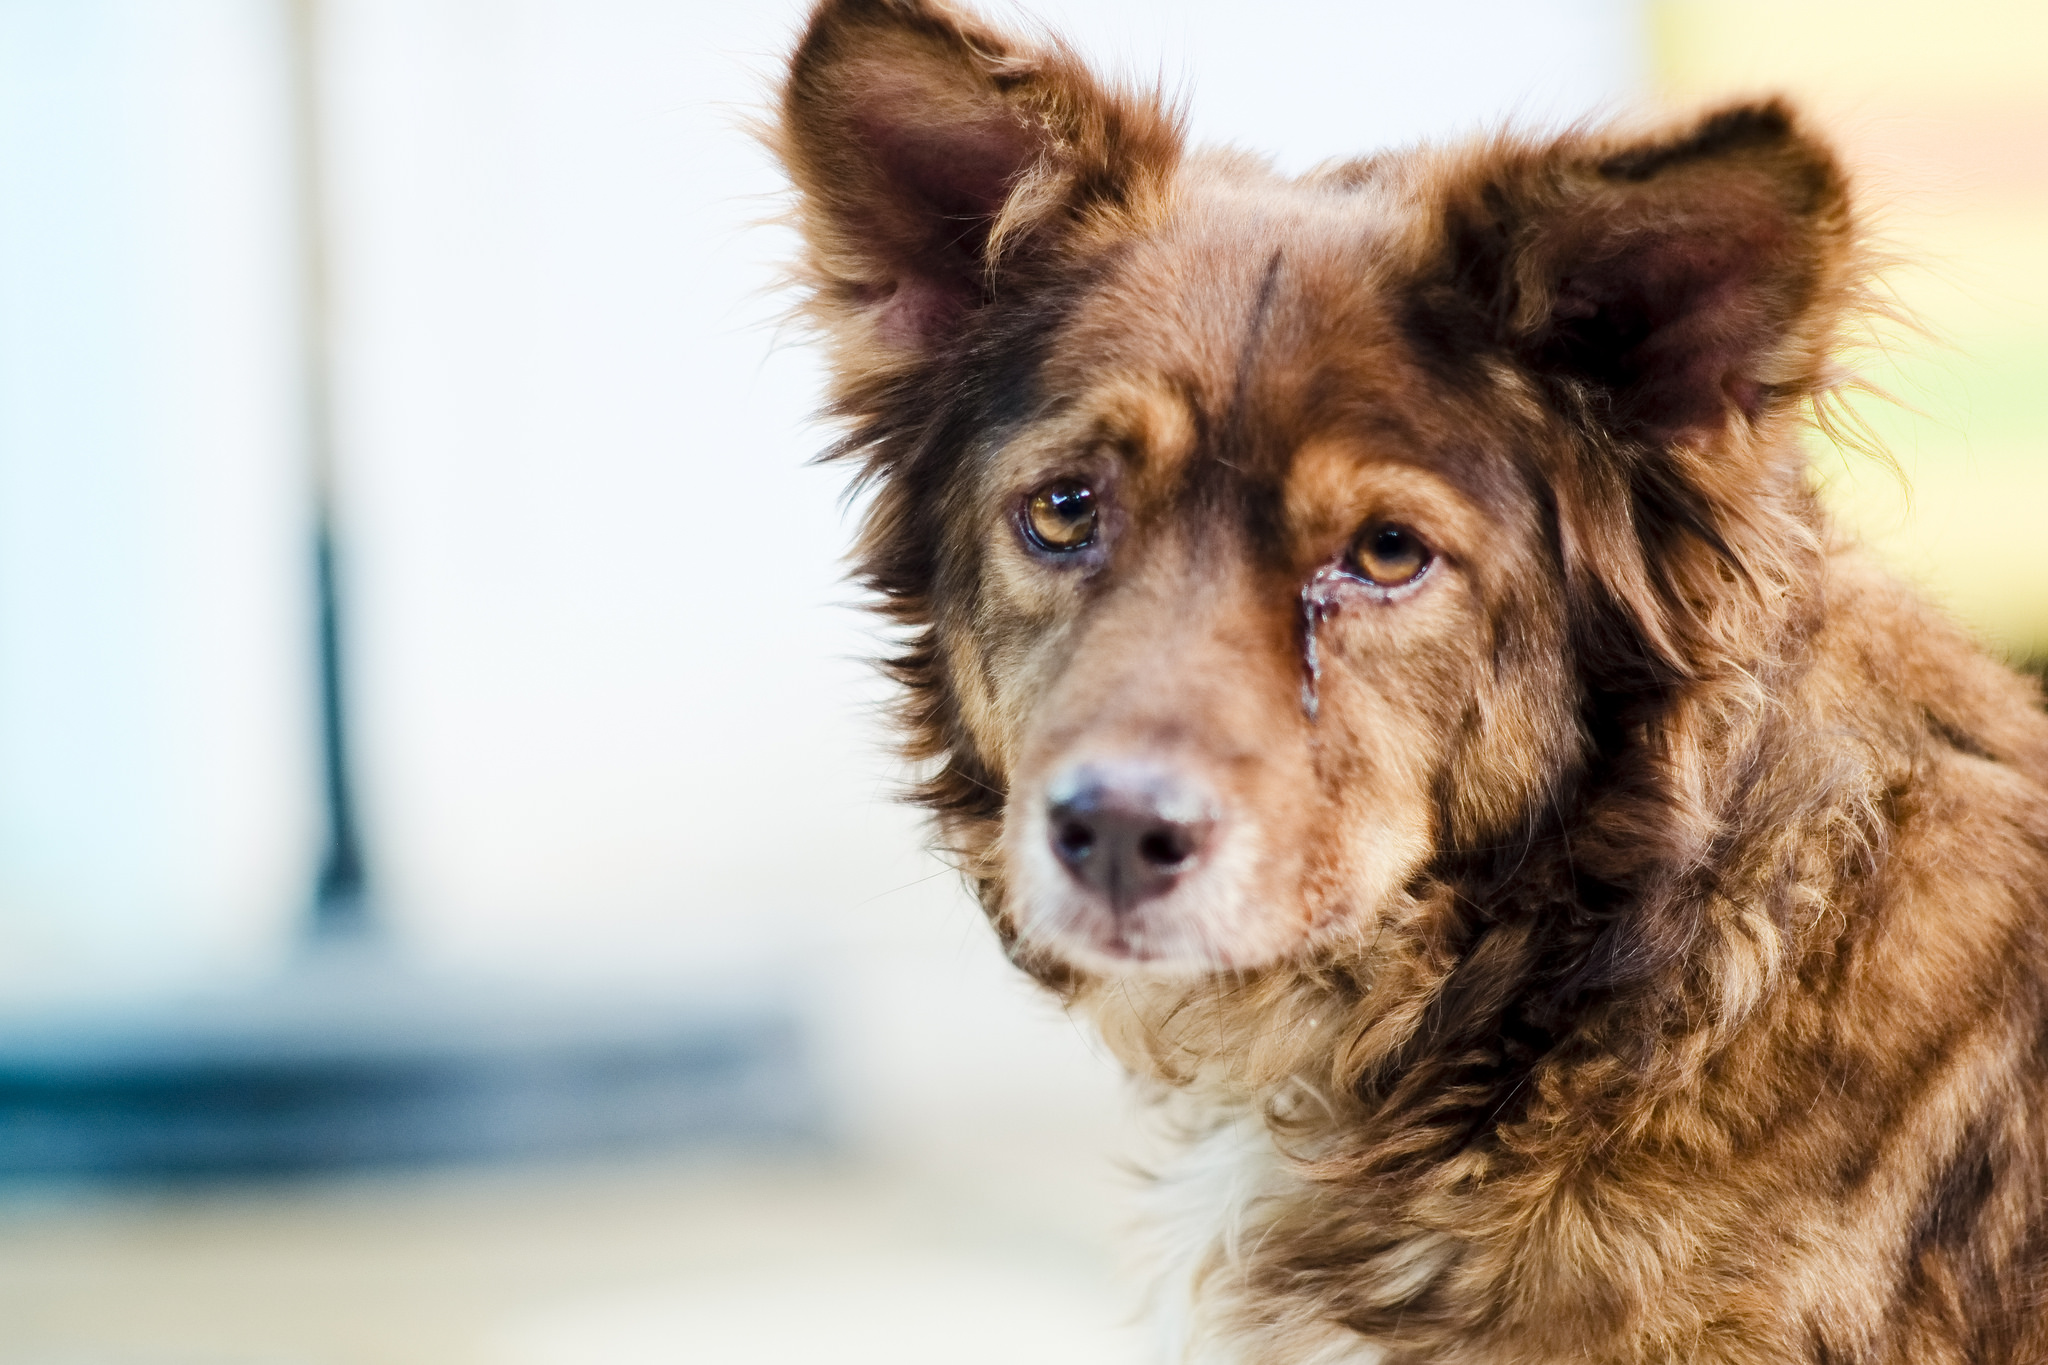 Smashing Specks Blood Signs Your Rover Dog May Be Sick Time To Call Signs Your Rover Dog May Be Sick Time To Call Vet Dog Throwing Up Bile What To Do Dog Throwing Up Bile houzz-03 Dog Throwing Up Bile